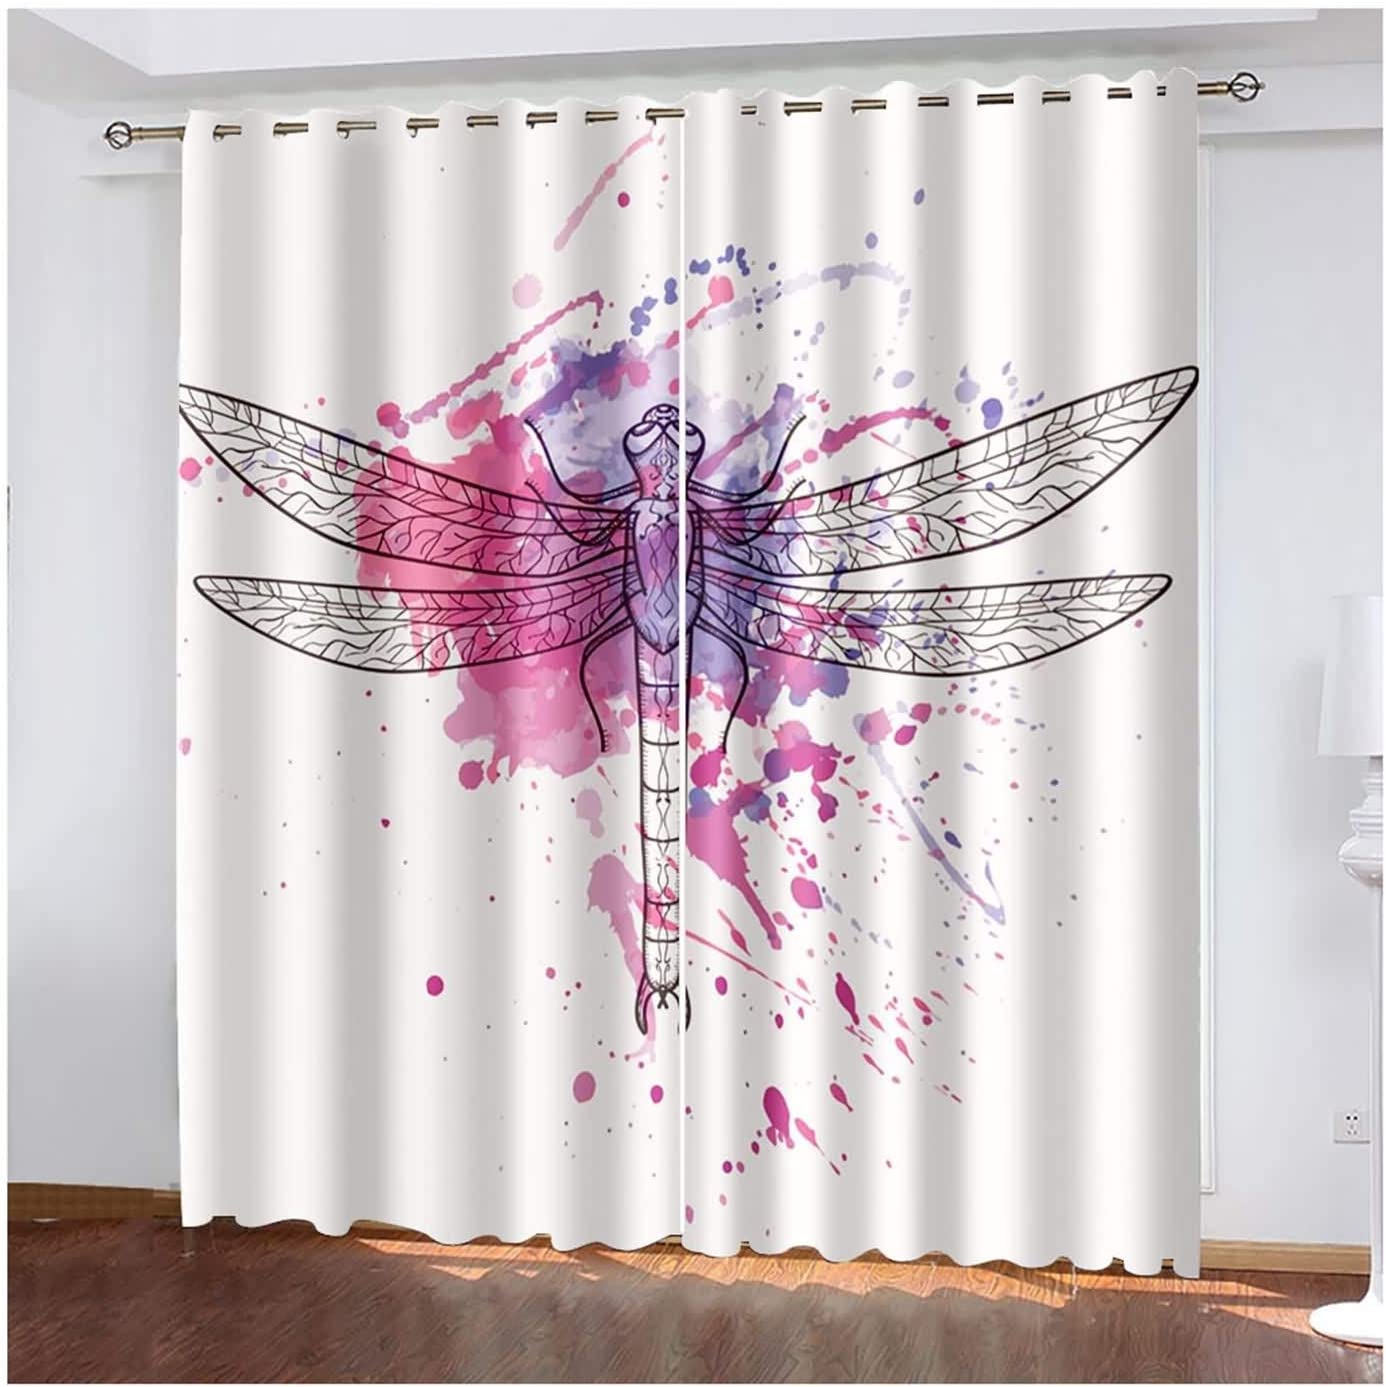 AMDXD safety 2 Animer and price revision Panels Polyester Curtain Bathroom Curtains Bedroom Blac